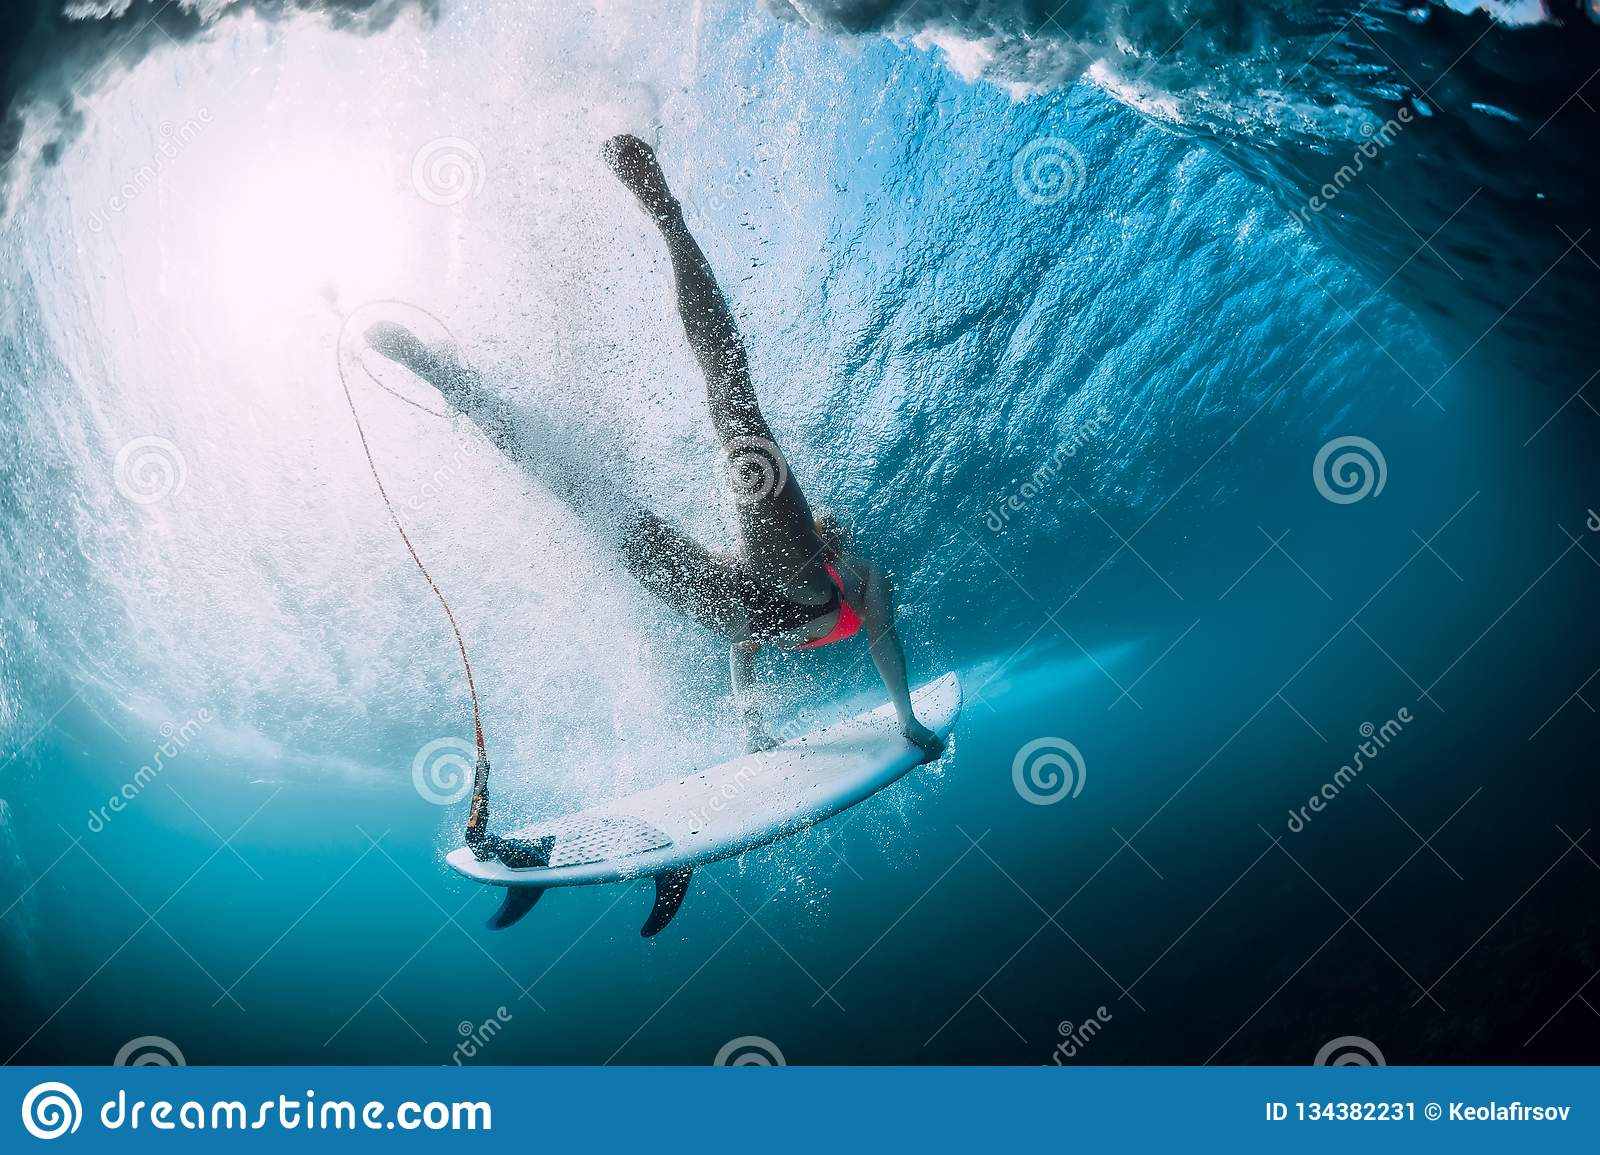 Surfer girl with surfboard dive with under ocean wave. Underwater view